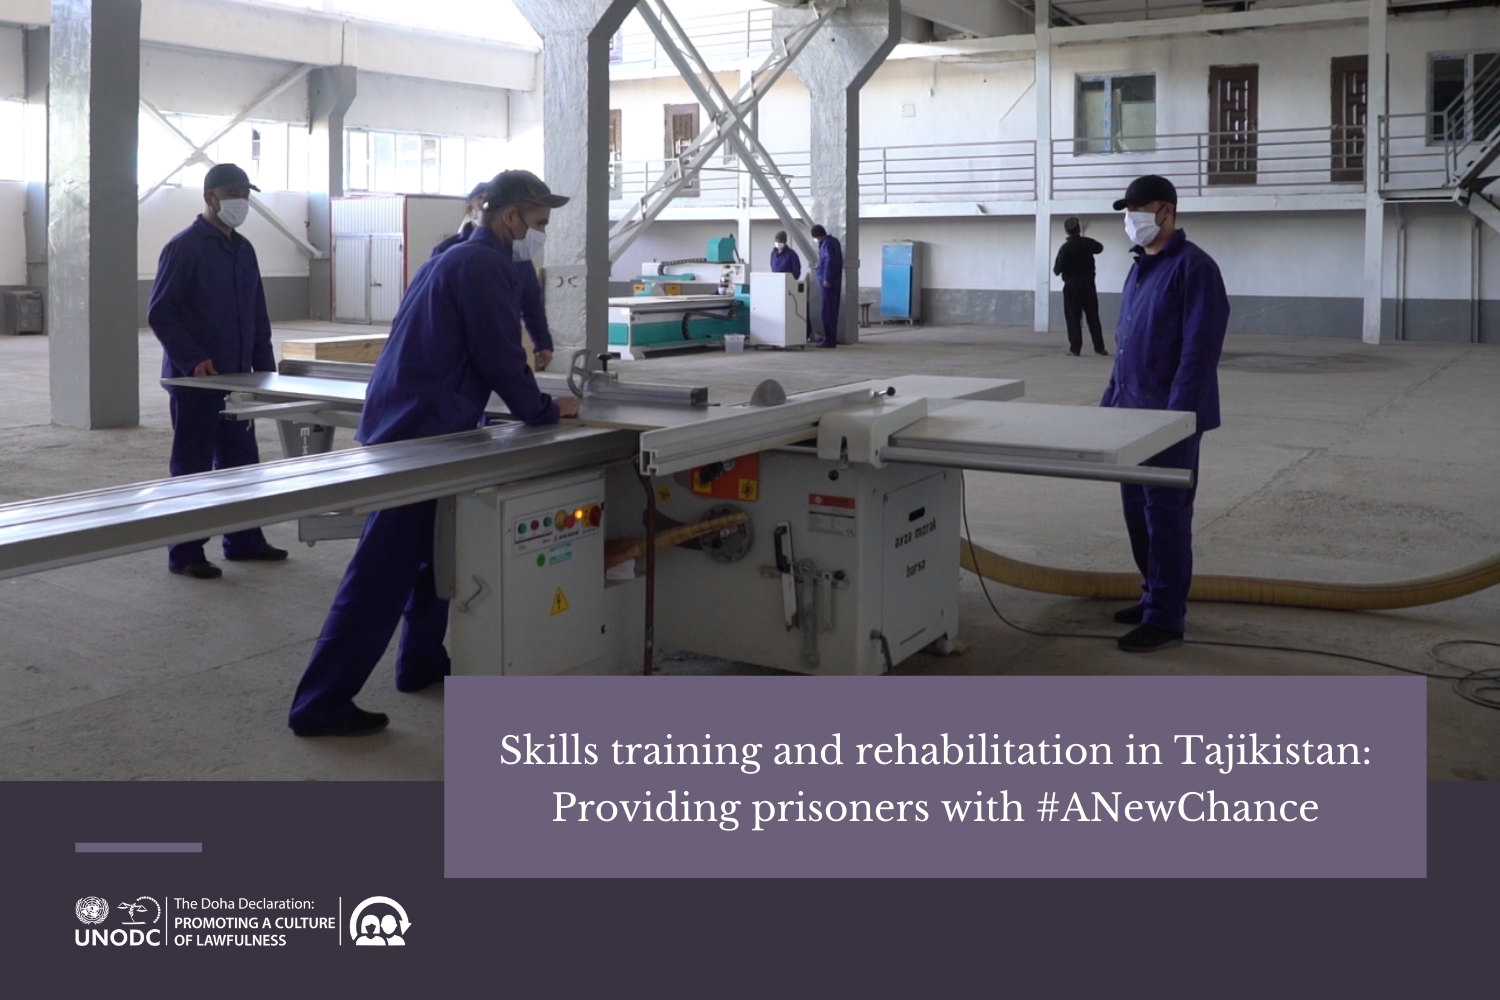 With metalwork and woodwork, UNODC supports prisoner rehabilitation in Tajikistan